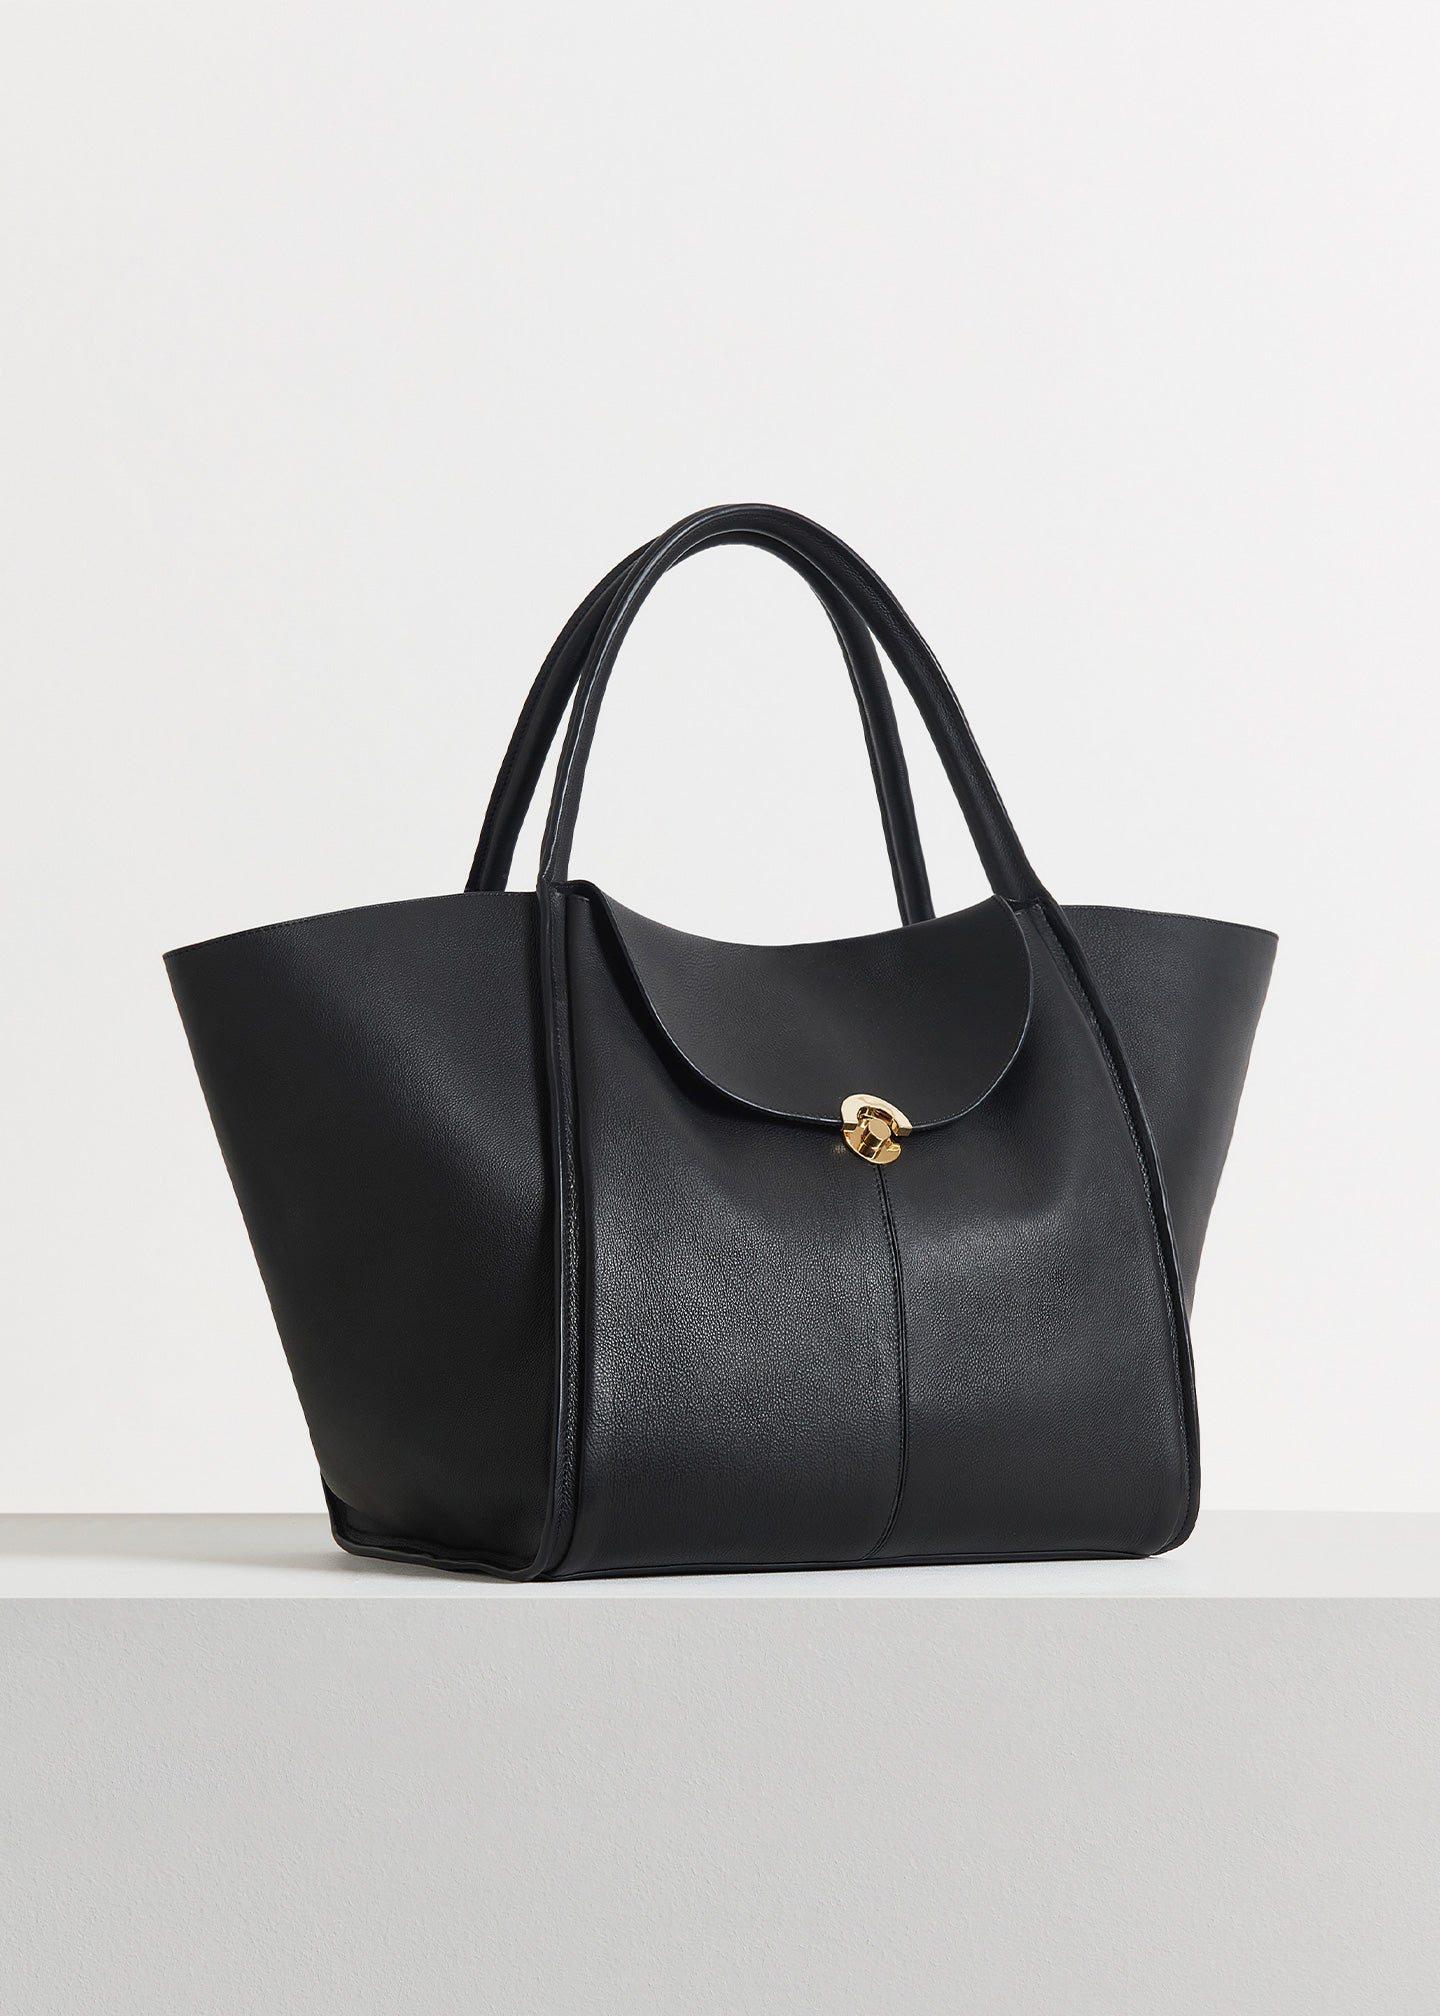 CO - Cabas Bag in Pebbled Leather - Black